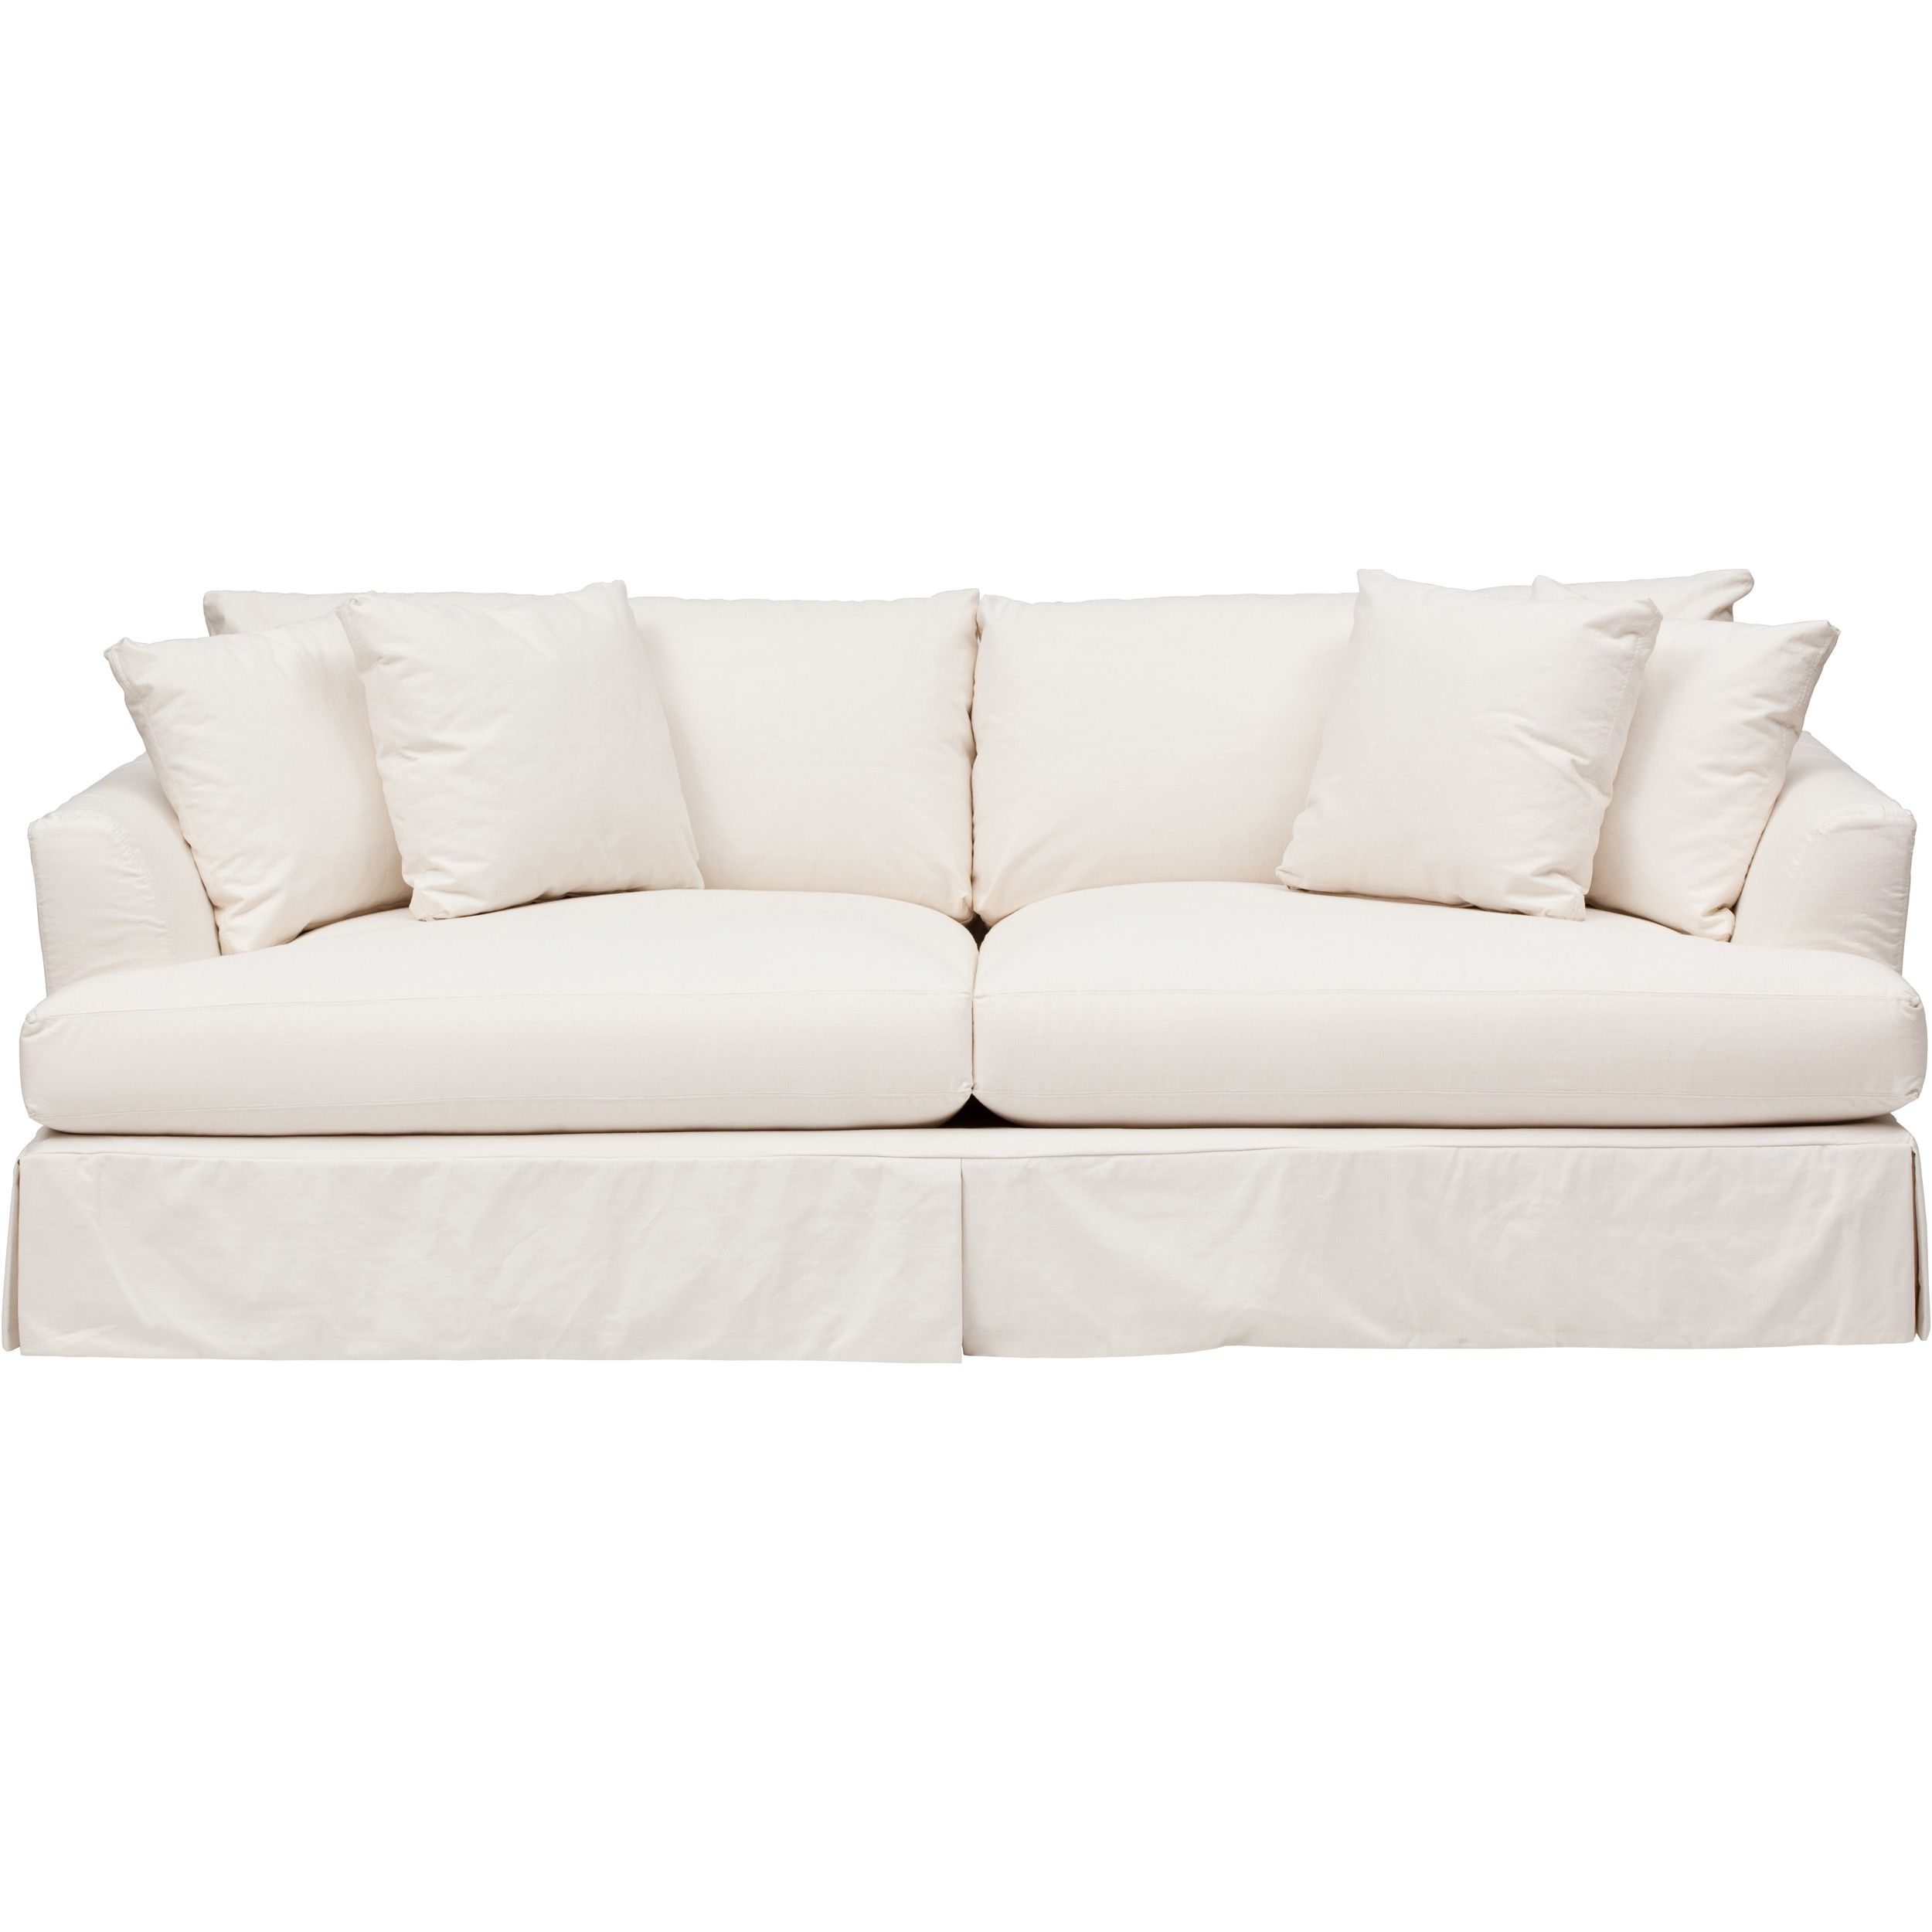 Andre Slipcover Sofa, Dyno White | House Ideas | Sofa, White sofas ...